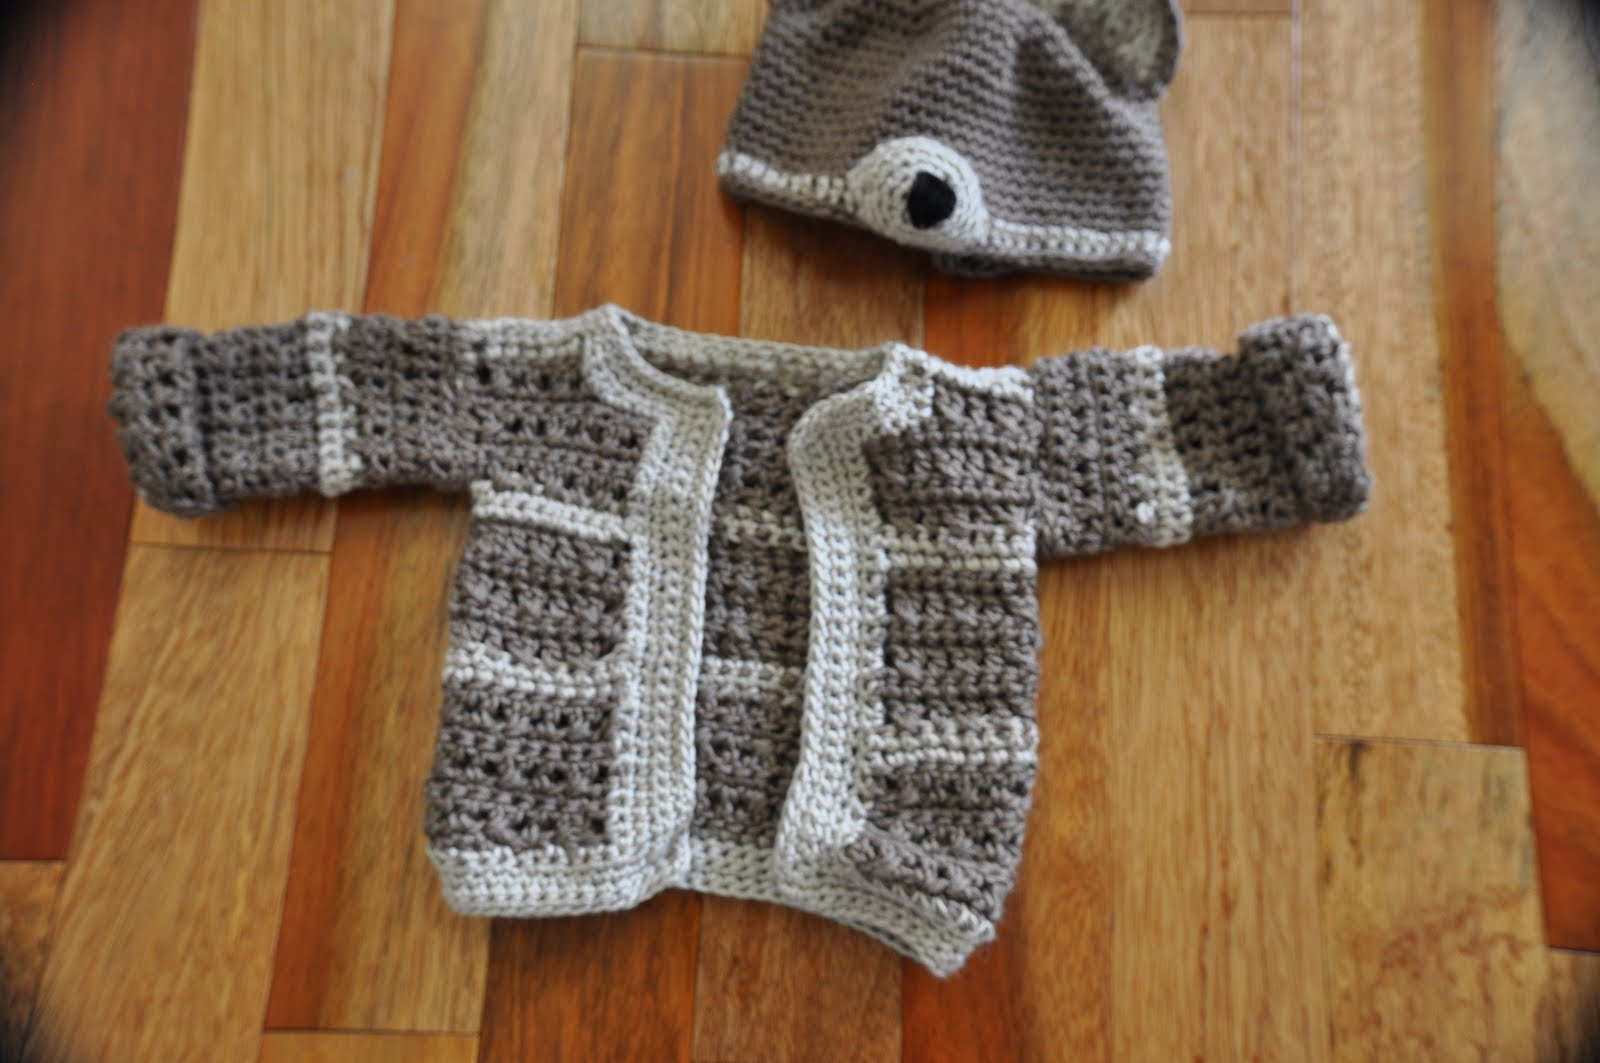 Free Crochet Patterns For Easy Baby Sweaters : Easy Crochet Baby Sweater ? Crochet Club